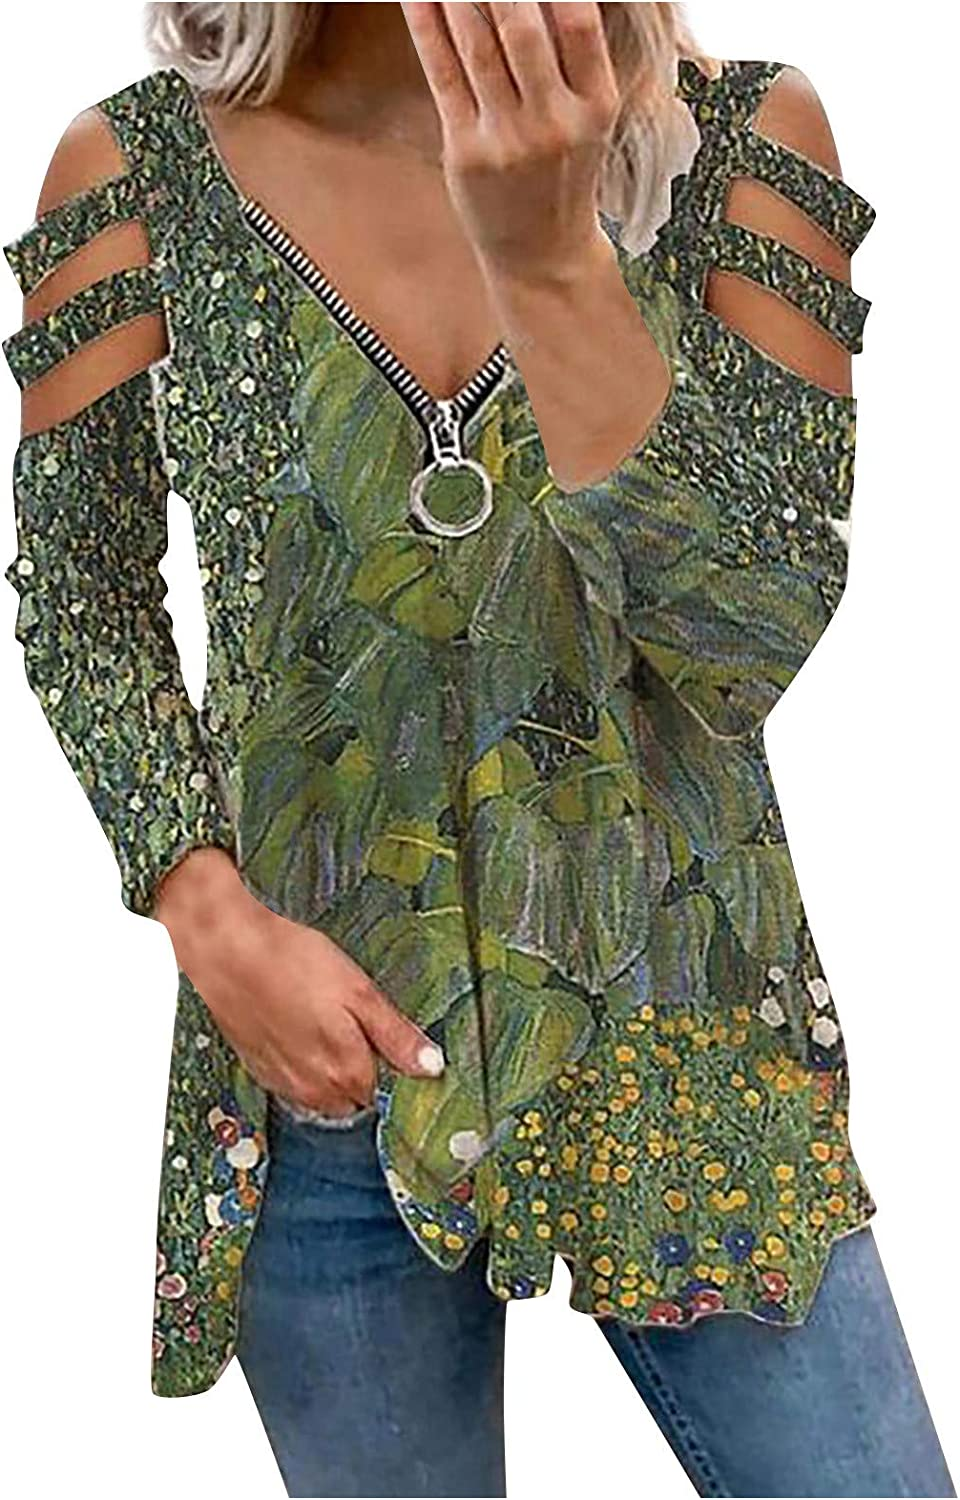 Women's Cut Out Off Shoulder Blouses V Neck Zipper Stylish Tees Creative Colorful Print Shirts Long Sleeve Tops Army Green